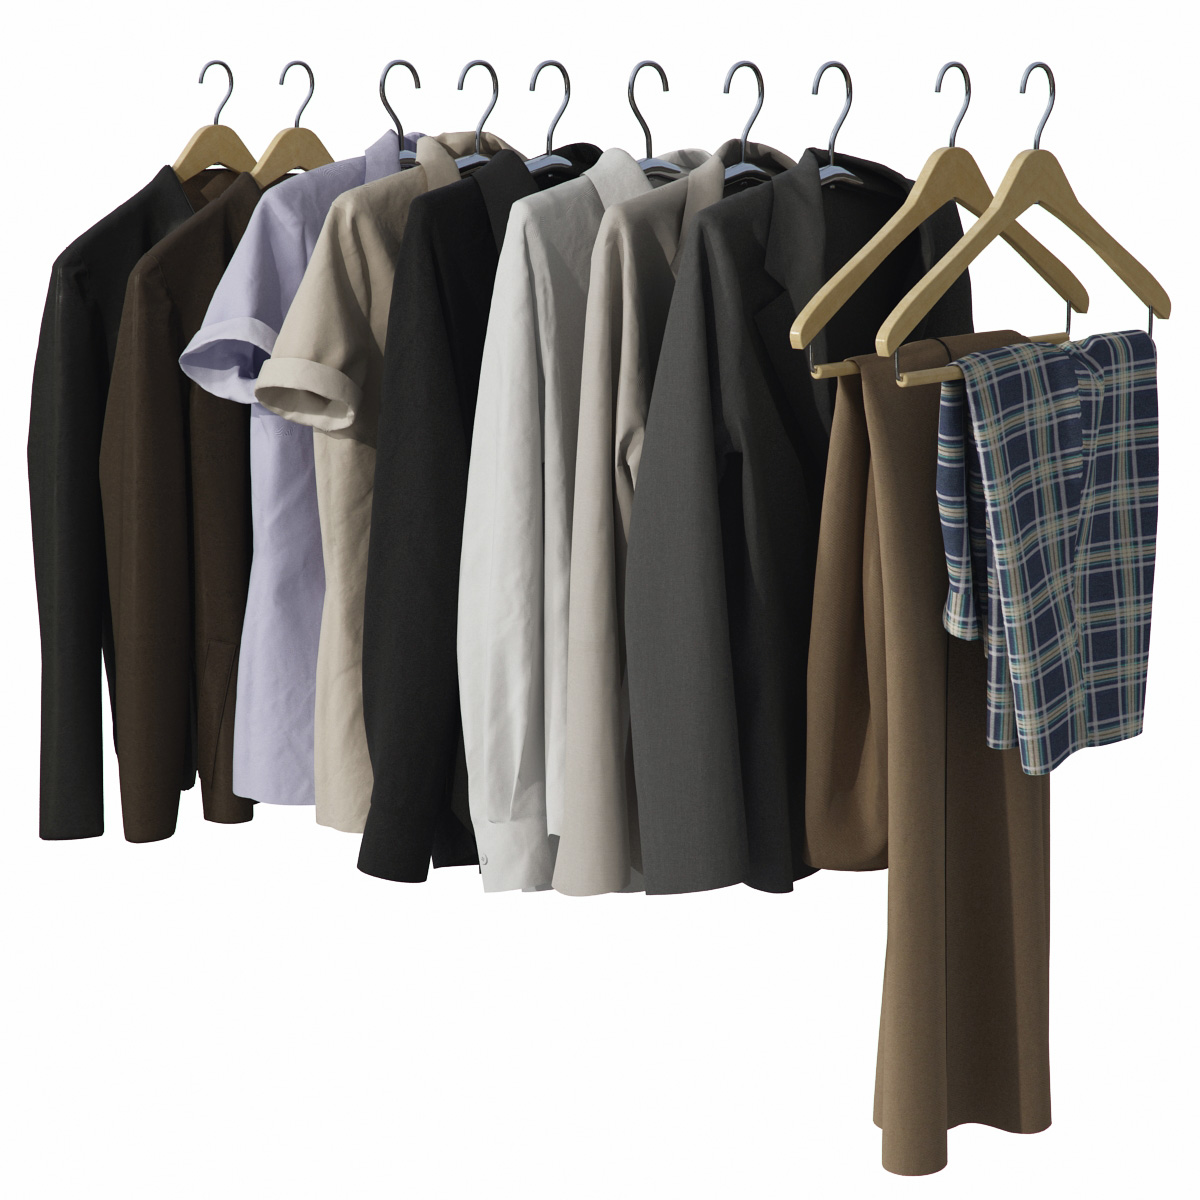 Wardrobe With Clothes Realistic 3d Model